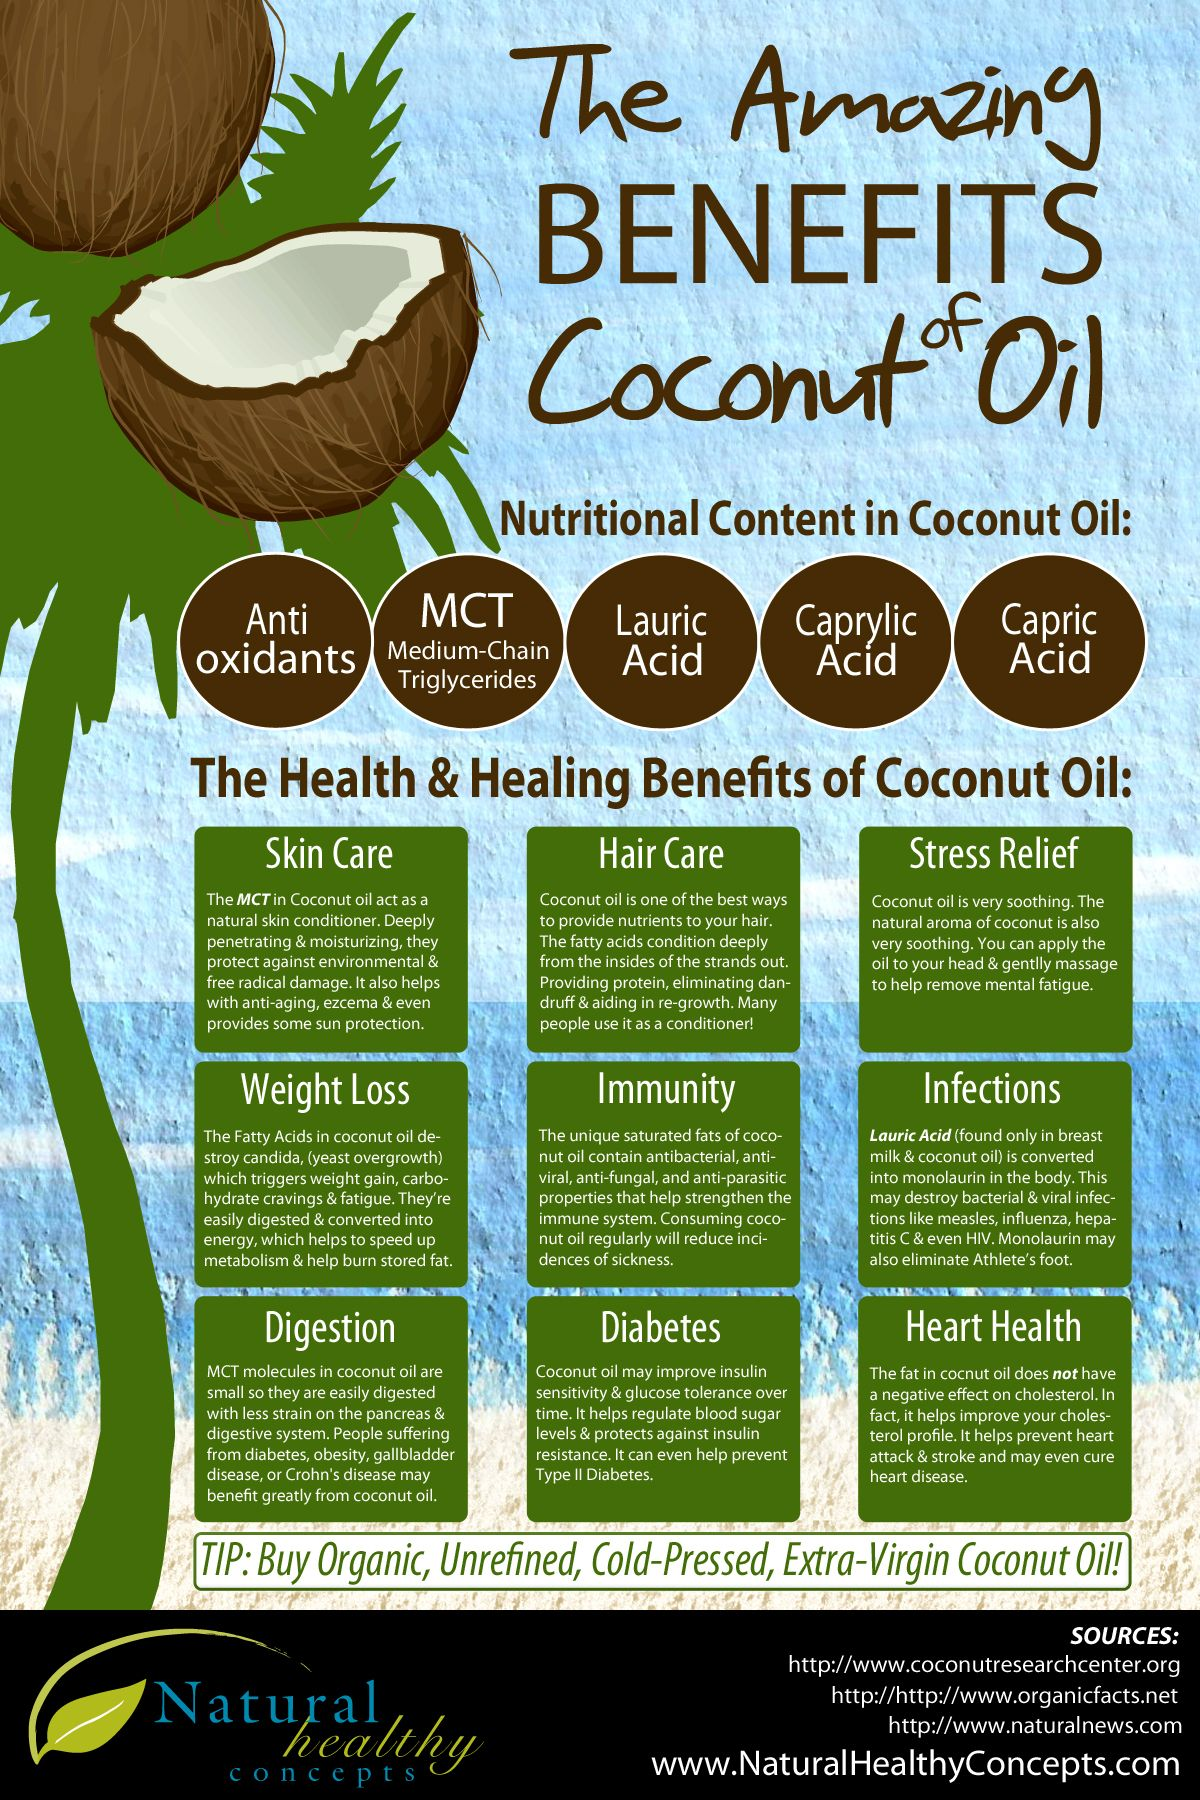 How to Use Coconut Oil on the Face | Livestrong.com